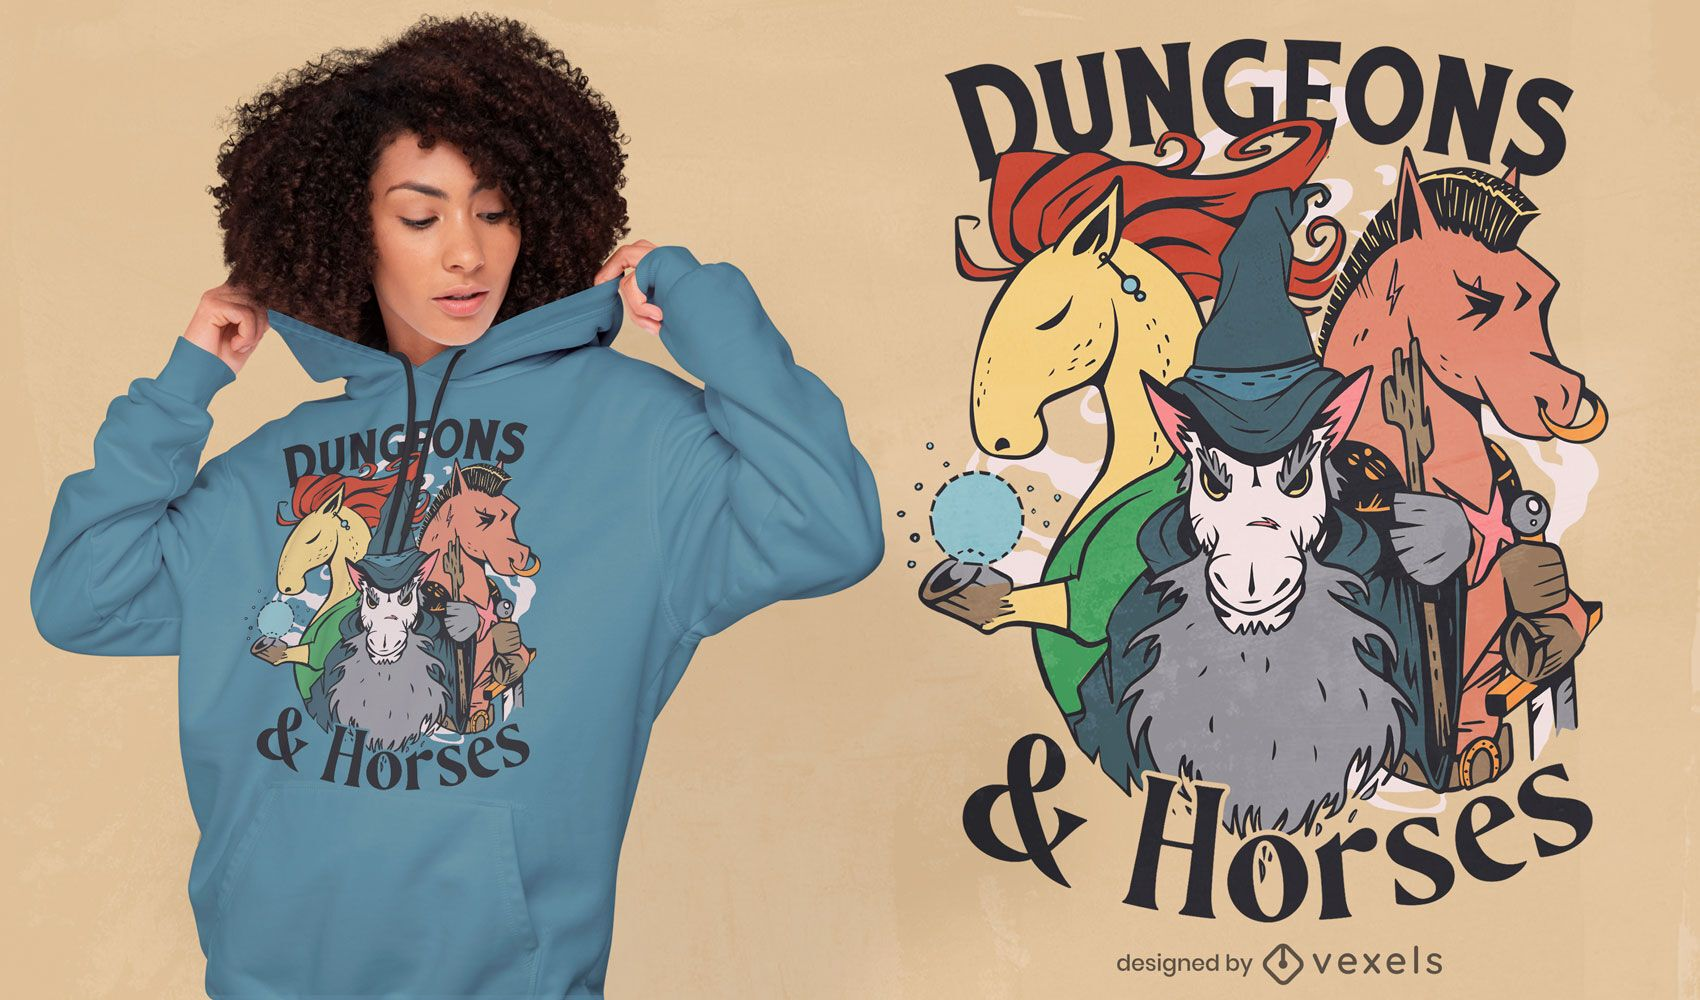 Dungeons and horses t-shirt design